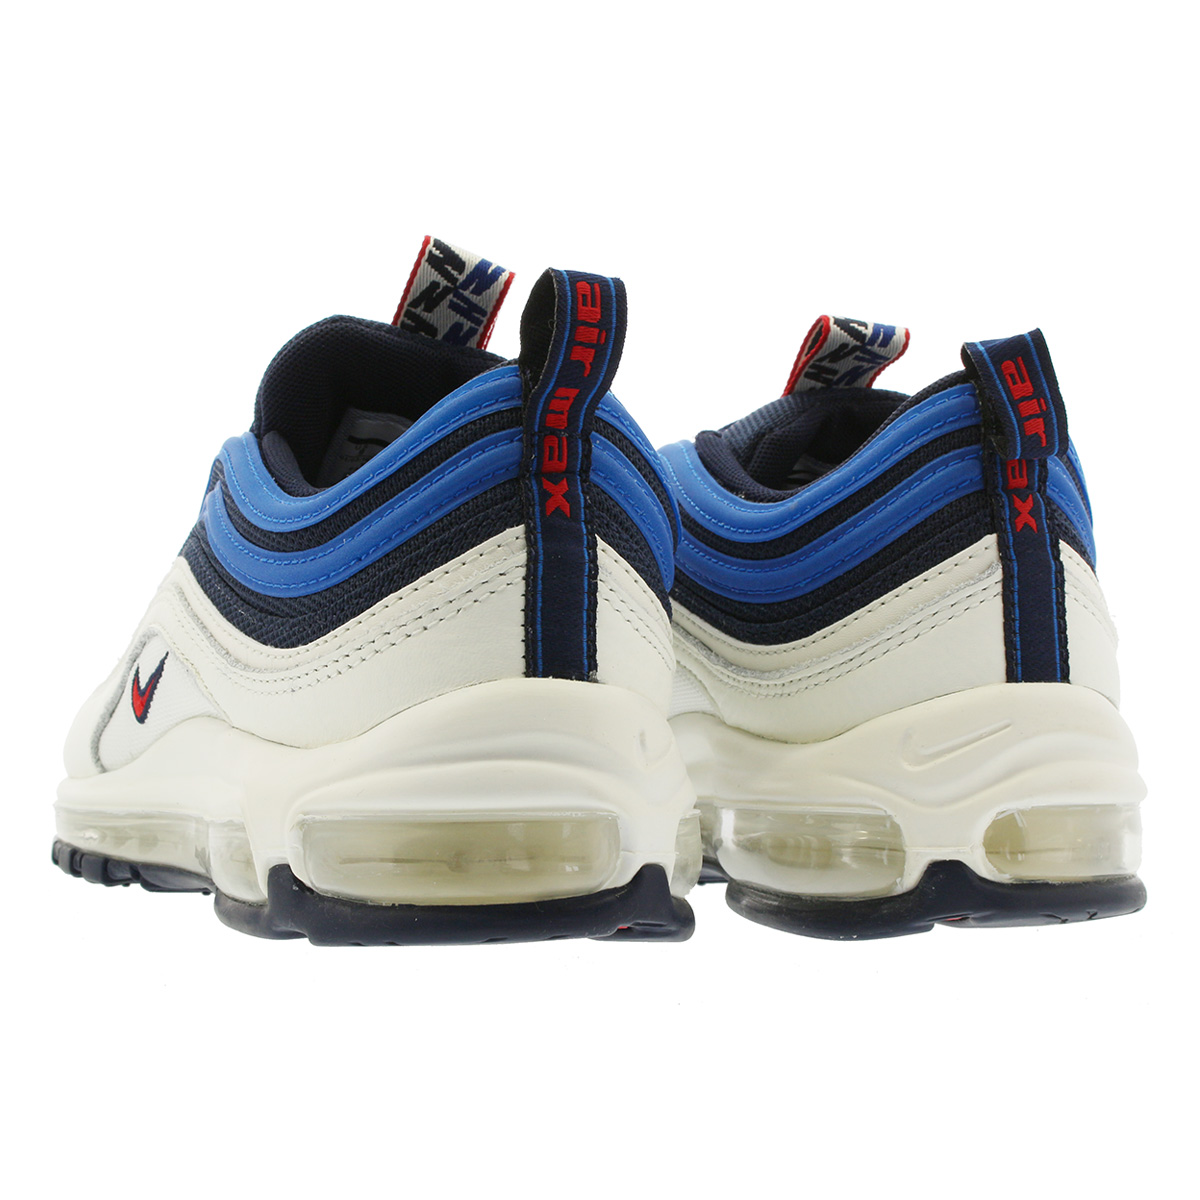 41d2323337 ... NIKE AIR MAX 97 SE Kie Ney AMAX 97 SE OBSIDIAN/UNIVERSITY RED/SAIL ...